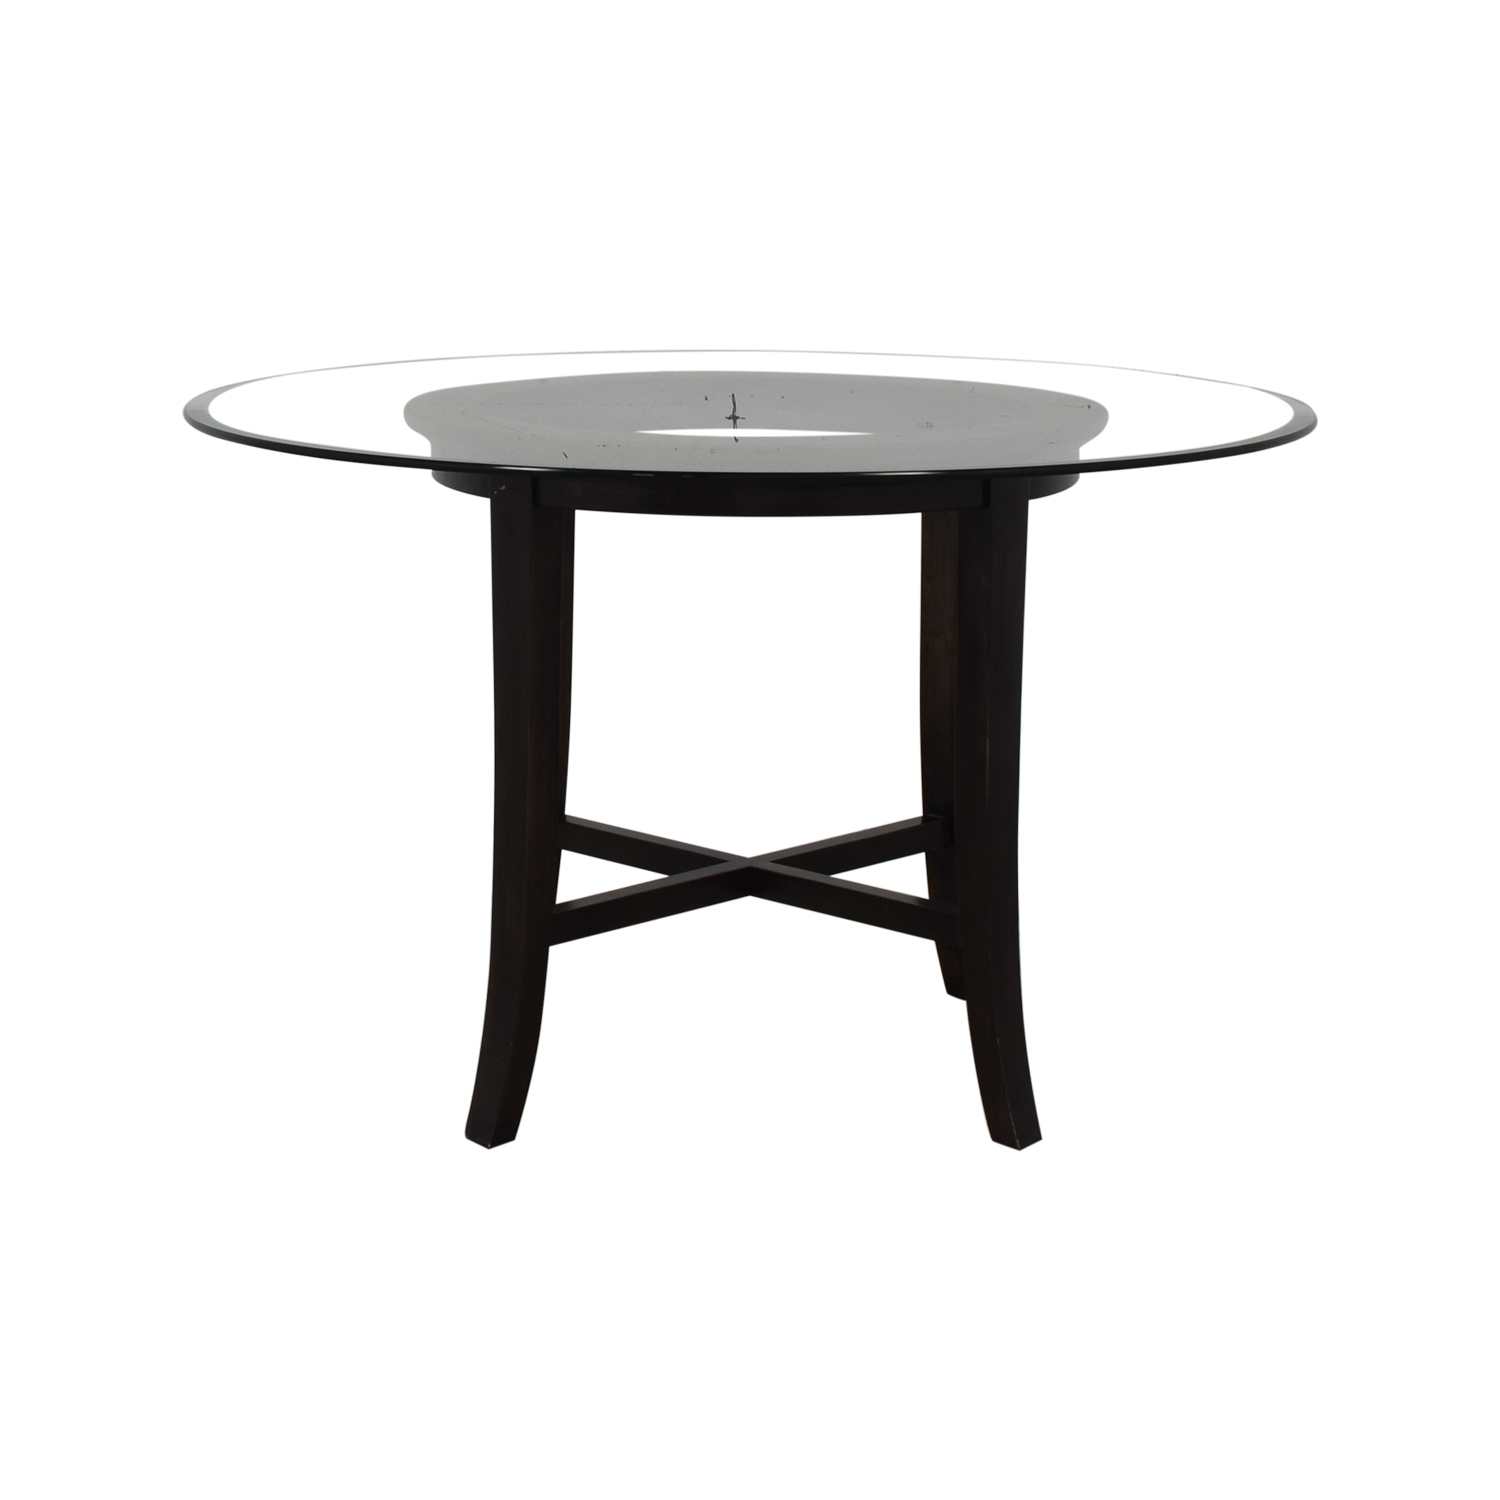 shop Crate & Barrel Halo Round Glass Dining Table Crate & Barrel Dinner Tables